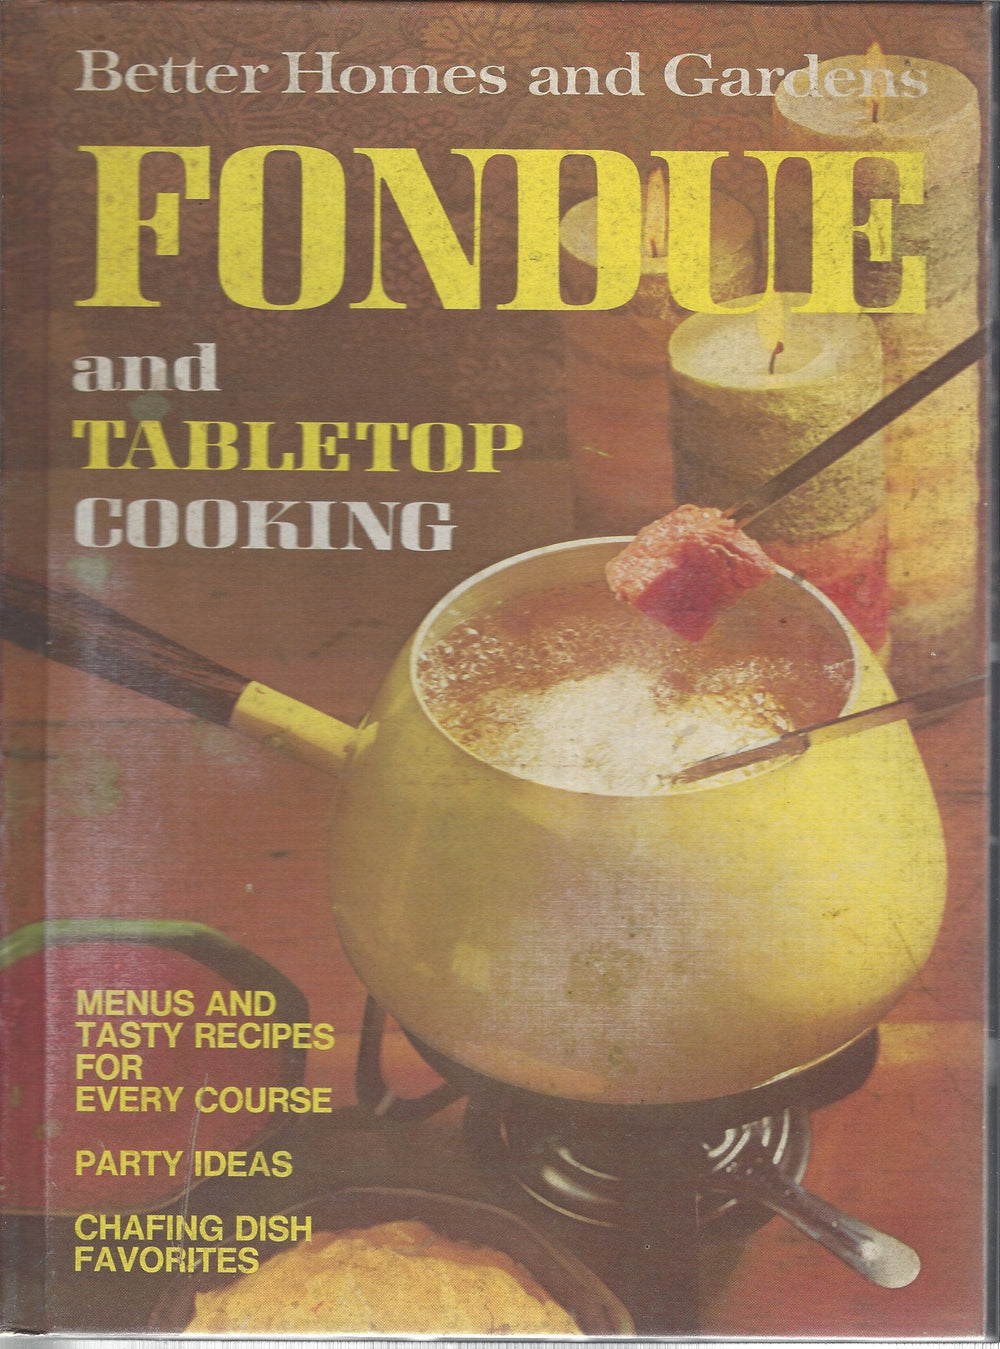 Better Homes and Gardens: Fondue and Table Top Cooking Cook Book (Hardcover)